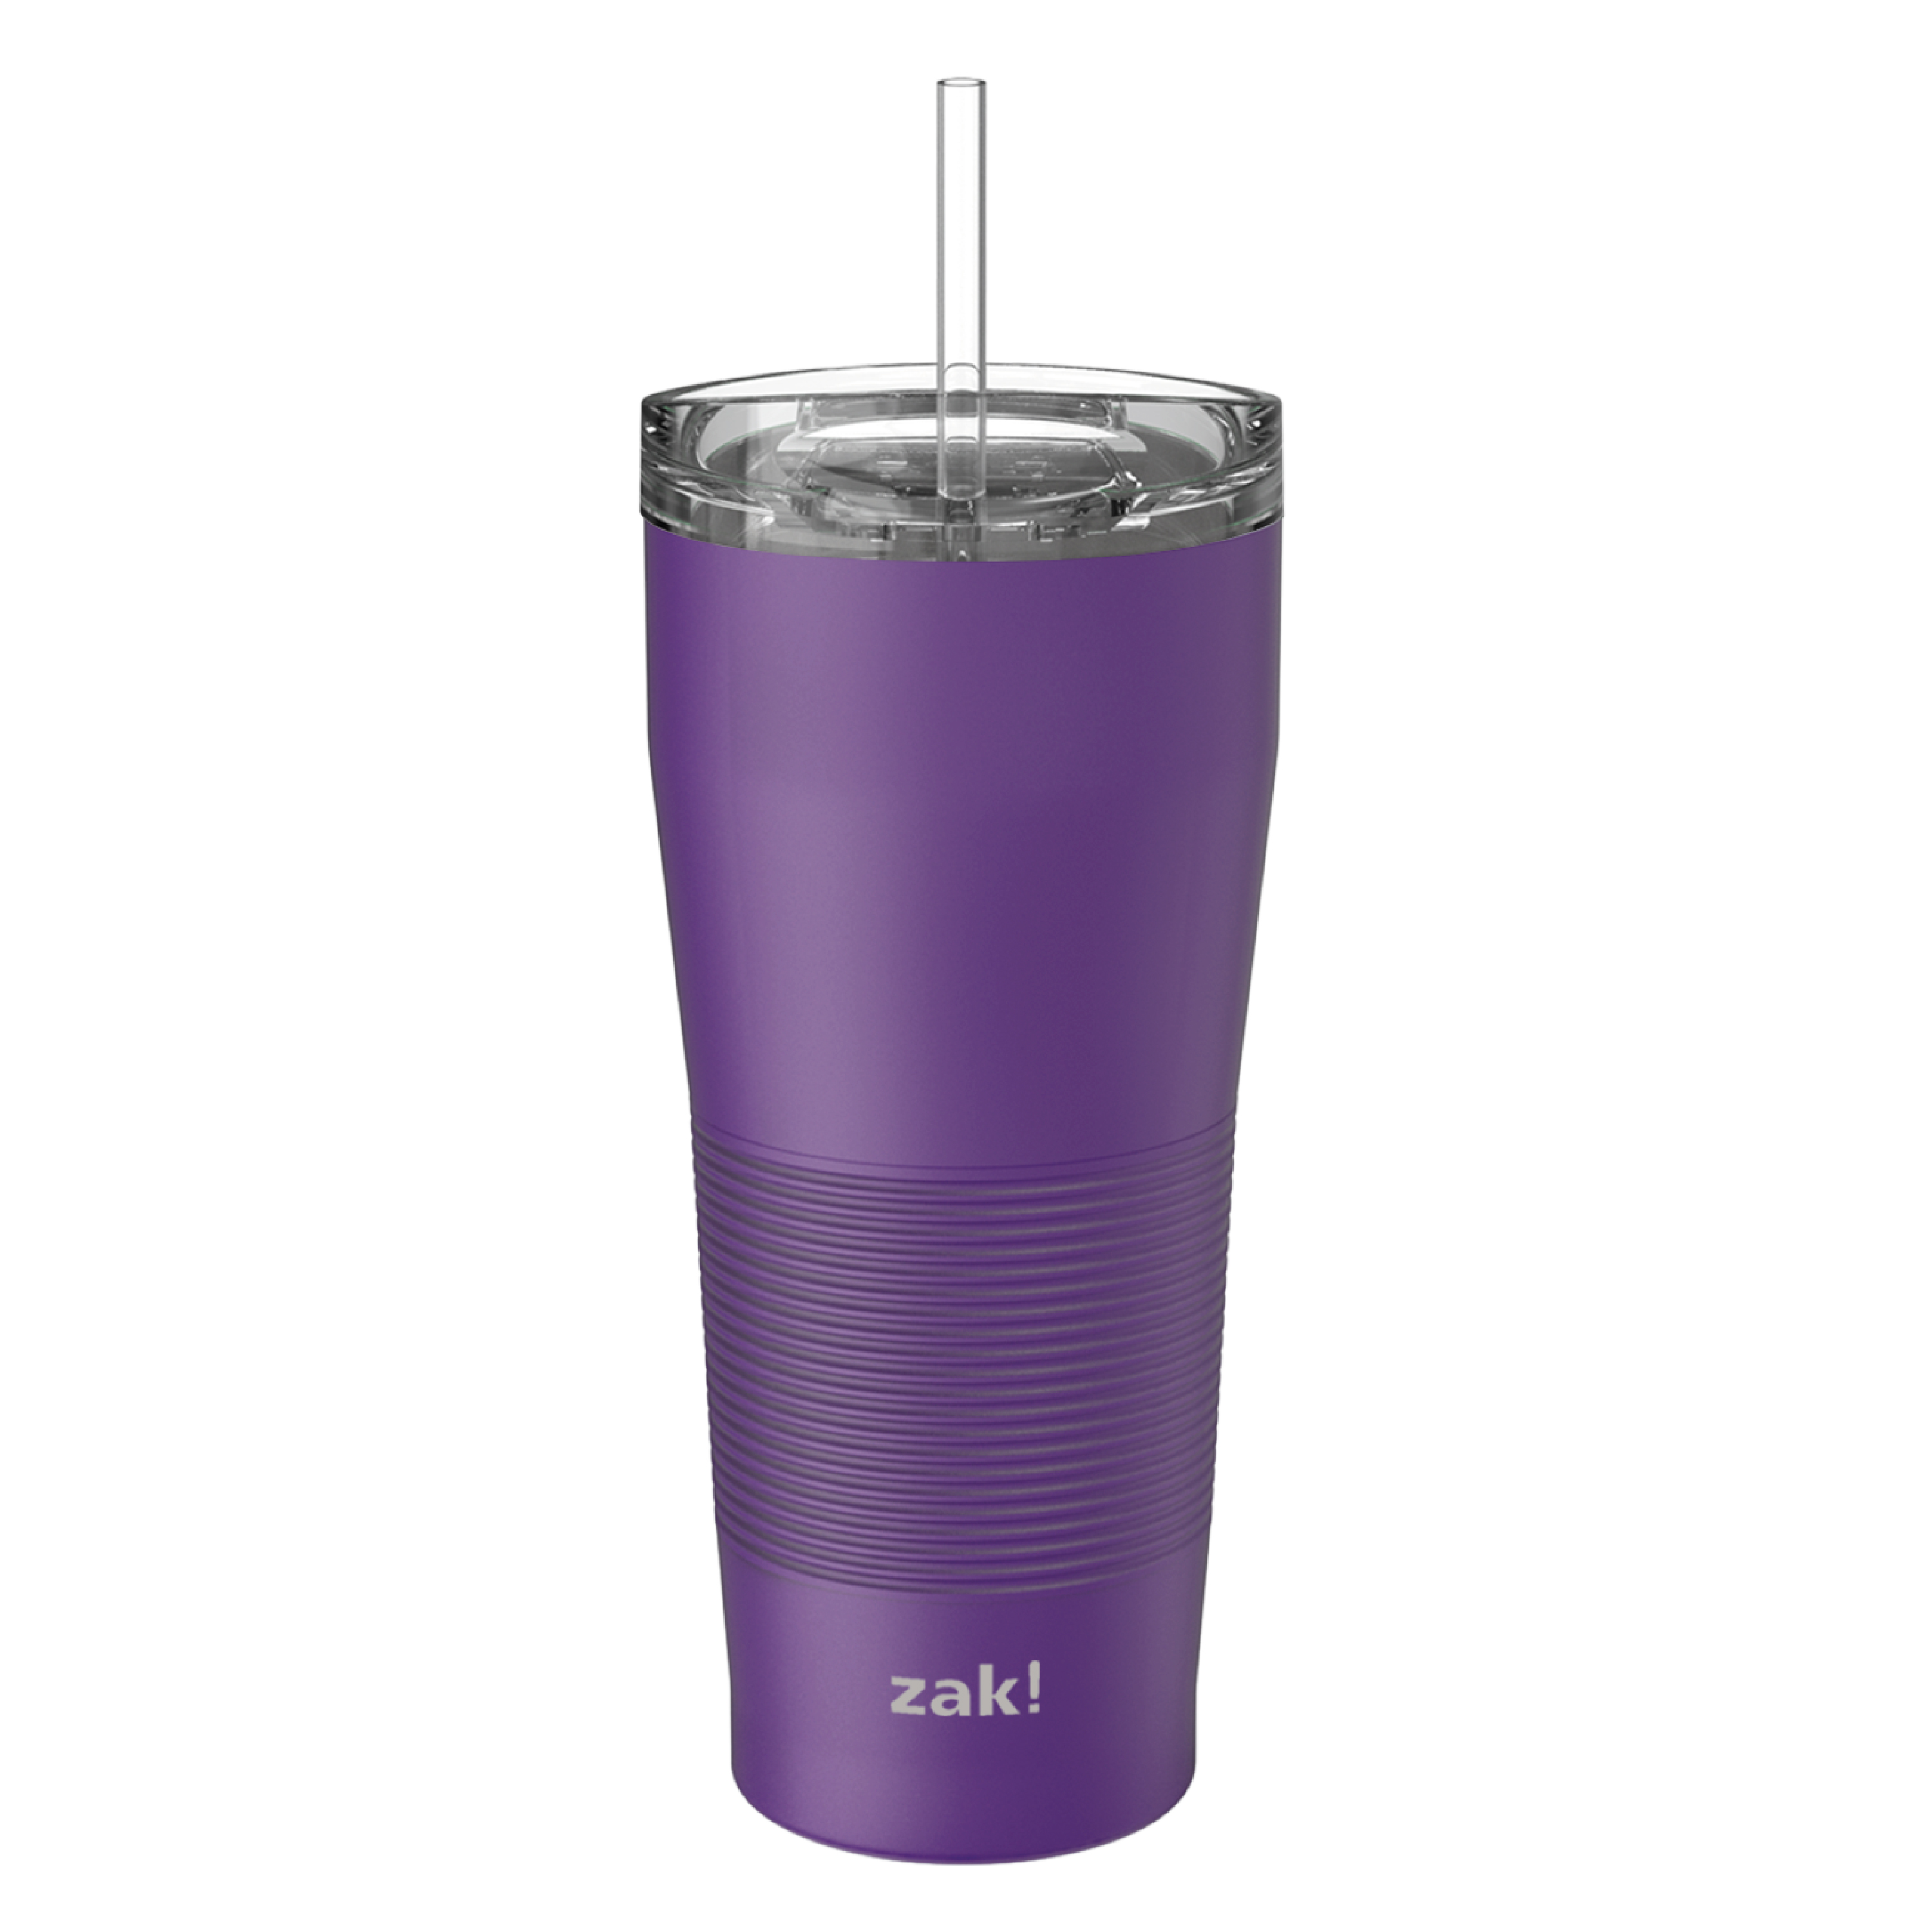 Lynden 28 ounce Stainless Steel Vacuum Insulated Tumbler with Straw, Viola slideshow image 3